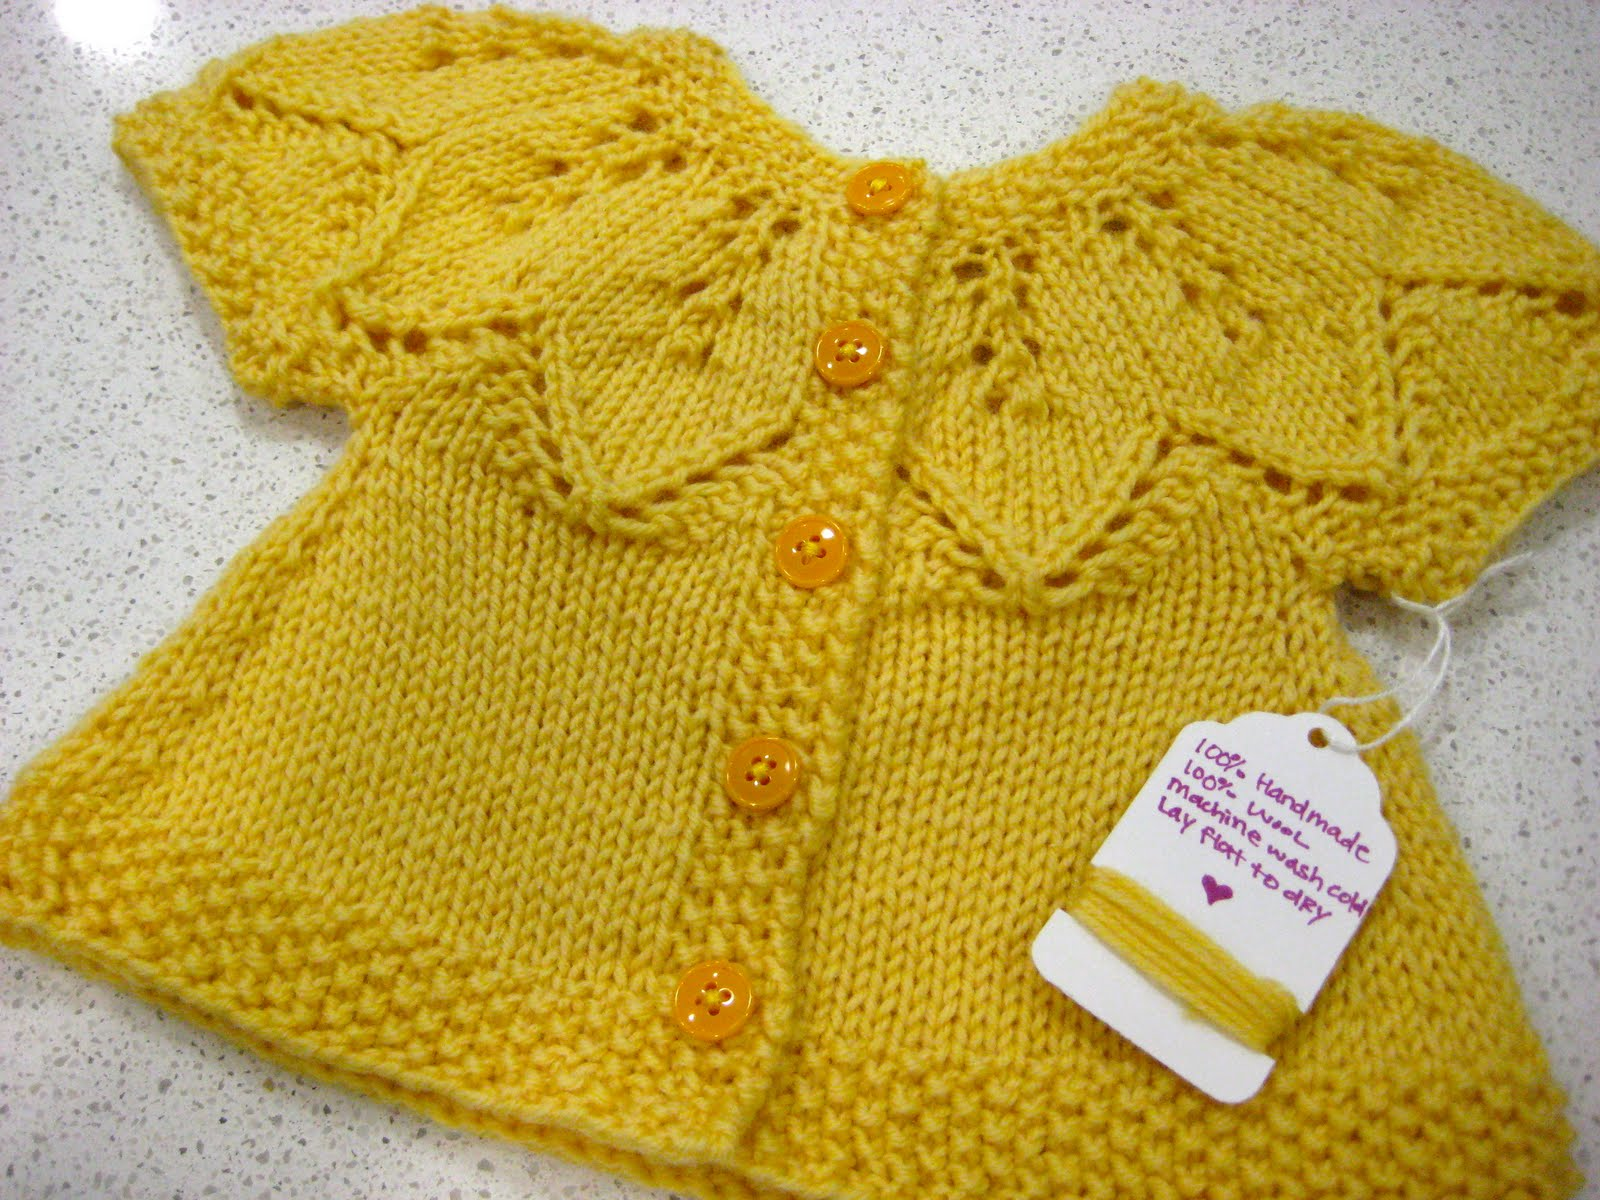 Baby Girl Knitted Sweater Pattern : So Sue: Knitted Baby Girl Sweater